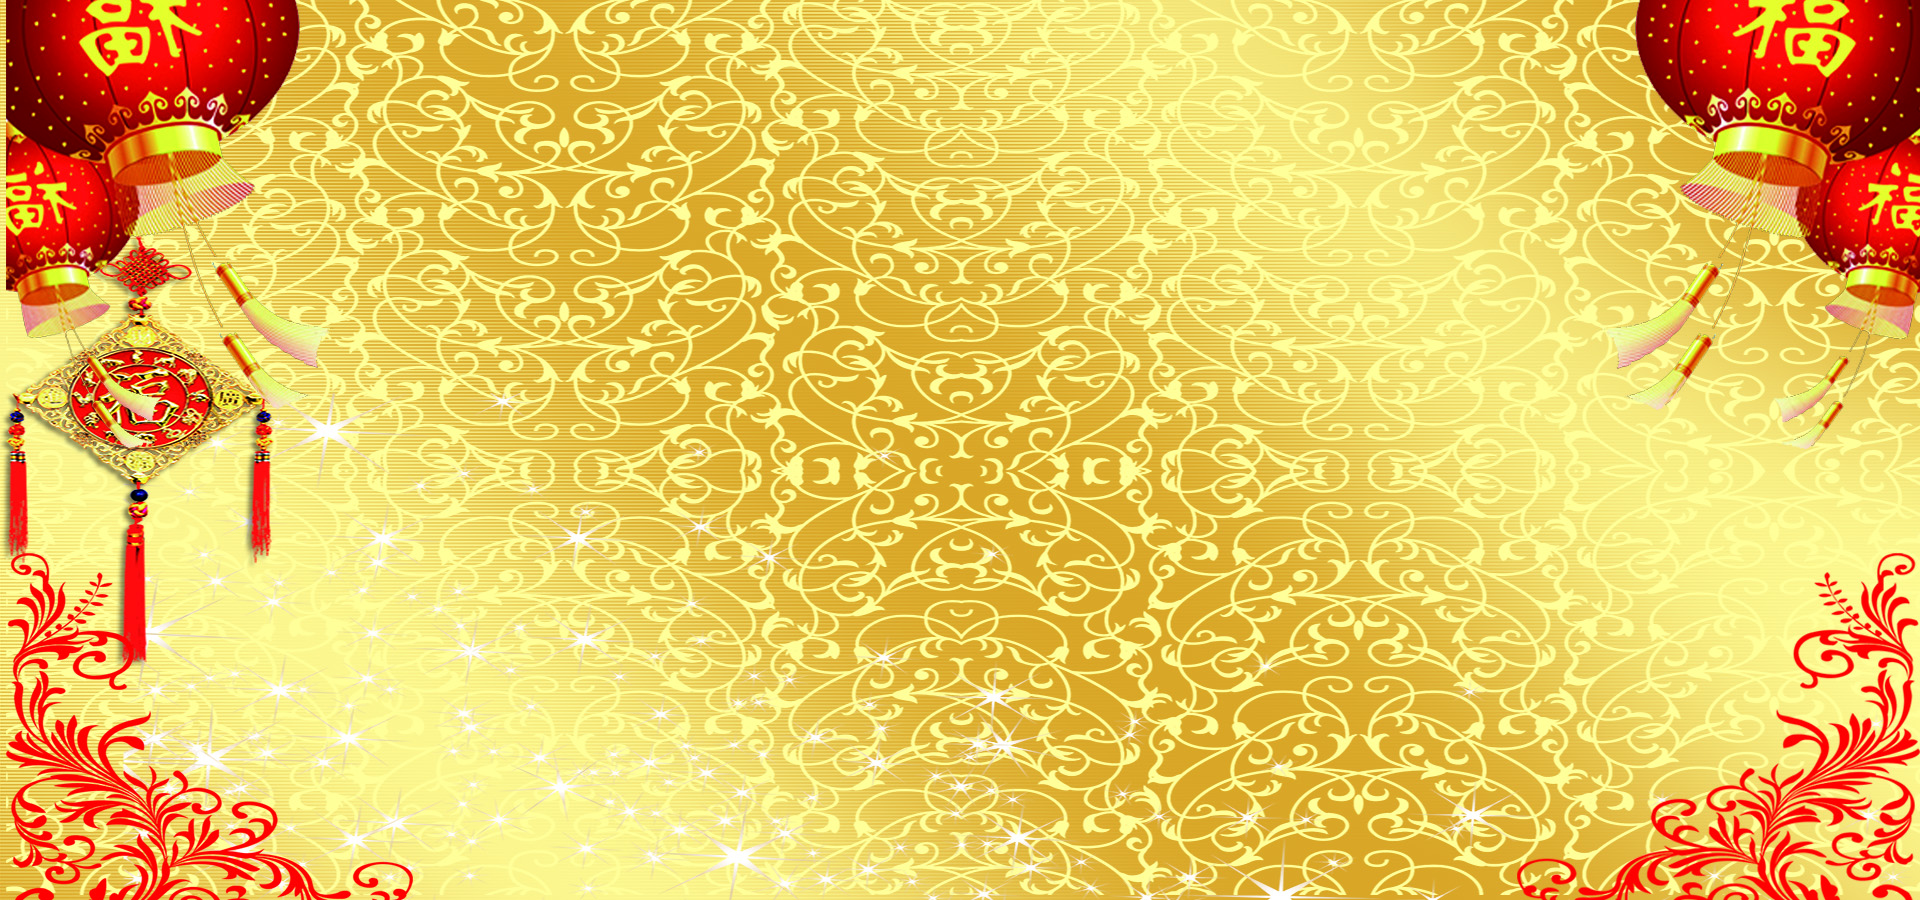 New Year Festive Chinese Knot Golden Poster Background